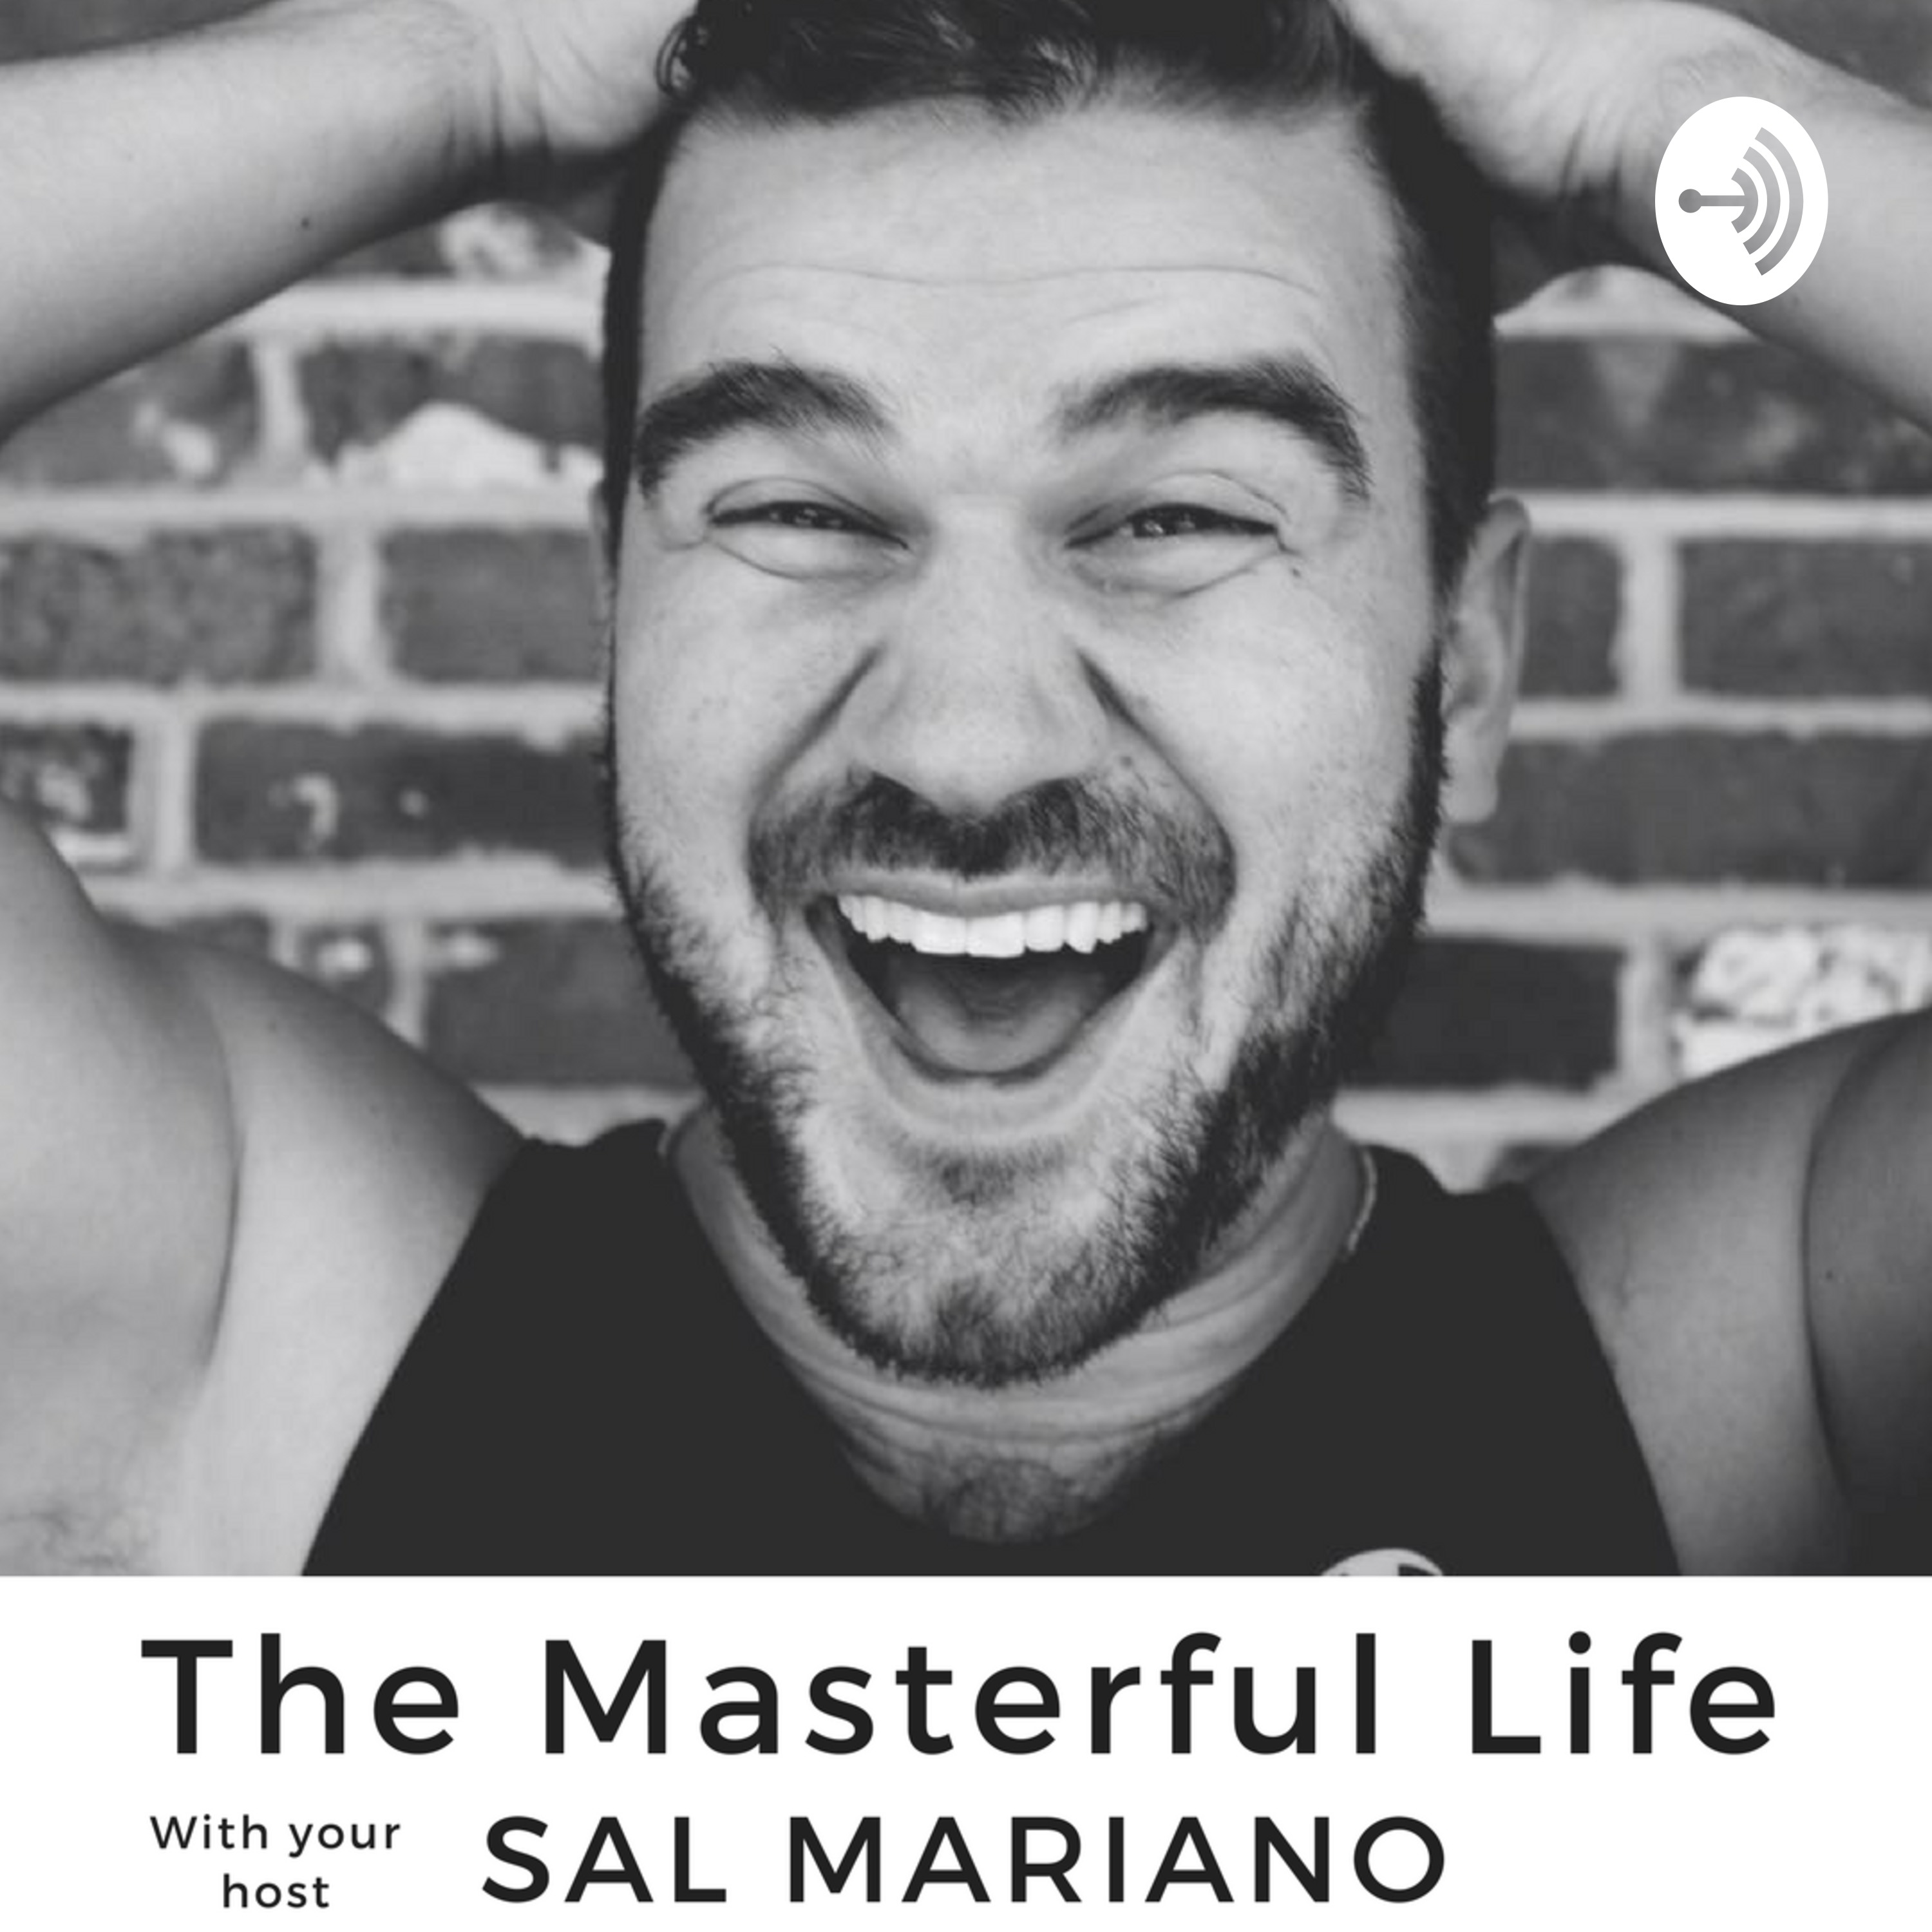 The Masterful Life